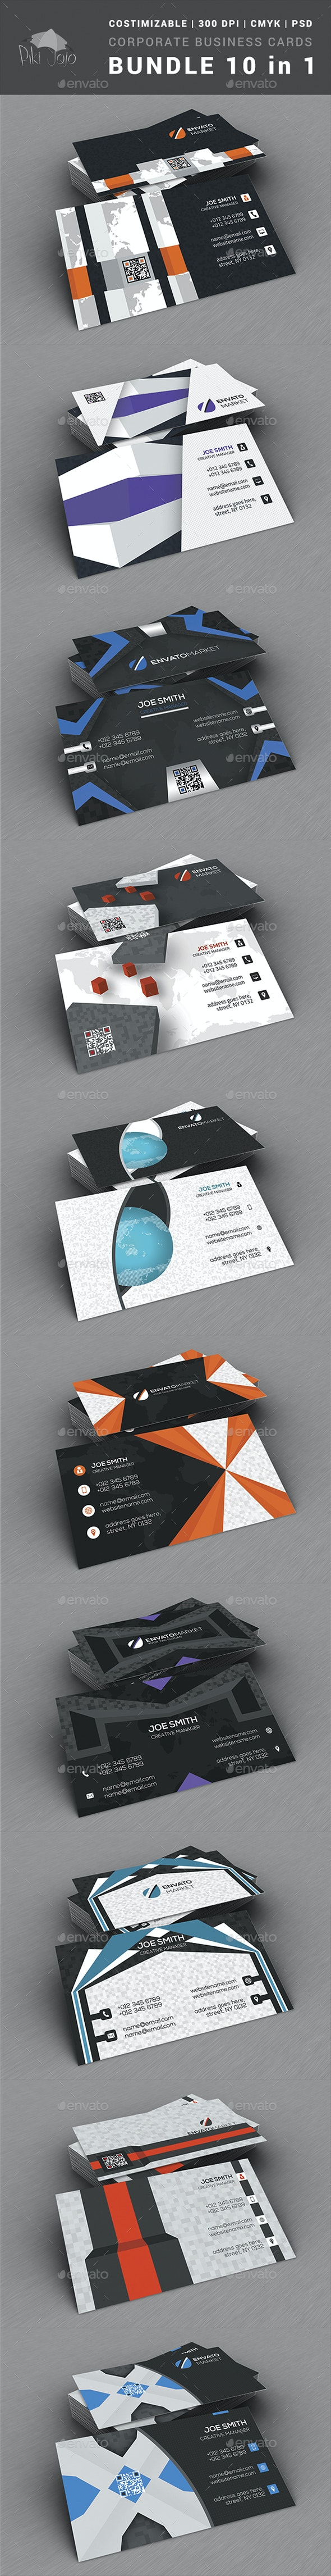 Corporate Business Cards BUNDLE 10 in 1 - Business Cards Print Templates